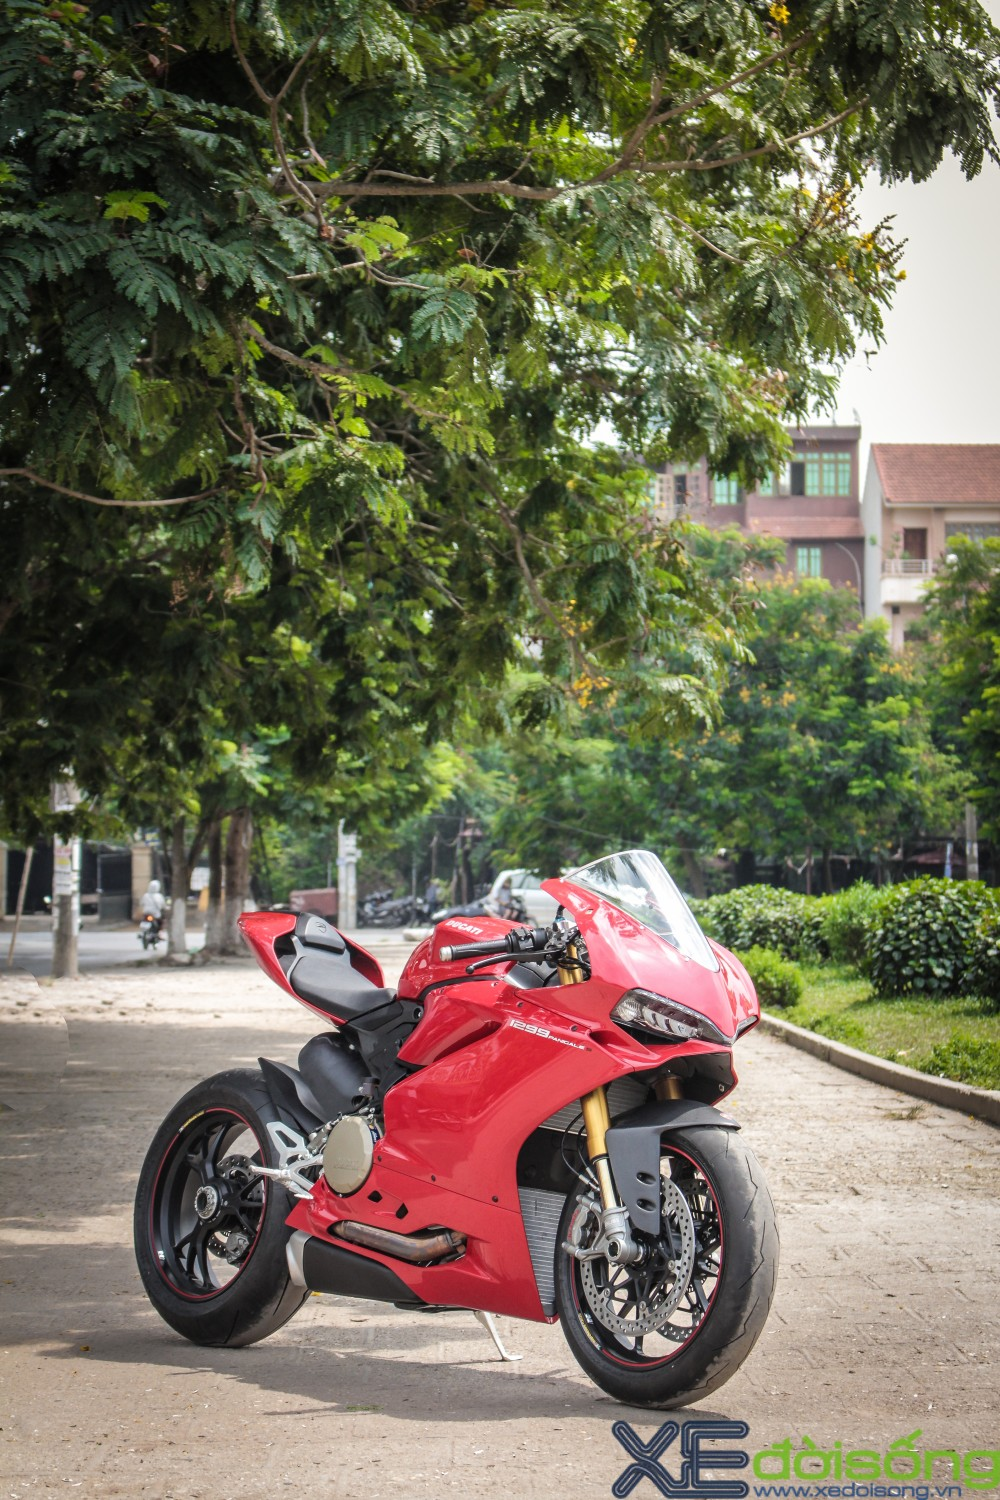 Can canh Ducati 1299 Panigale S dau tien tai Viet Nam voi gia 1 ty dong - 3